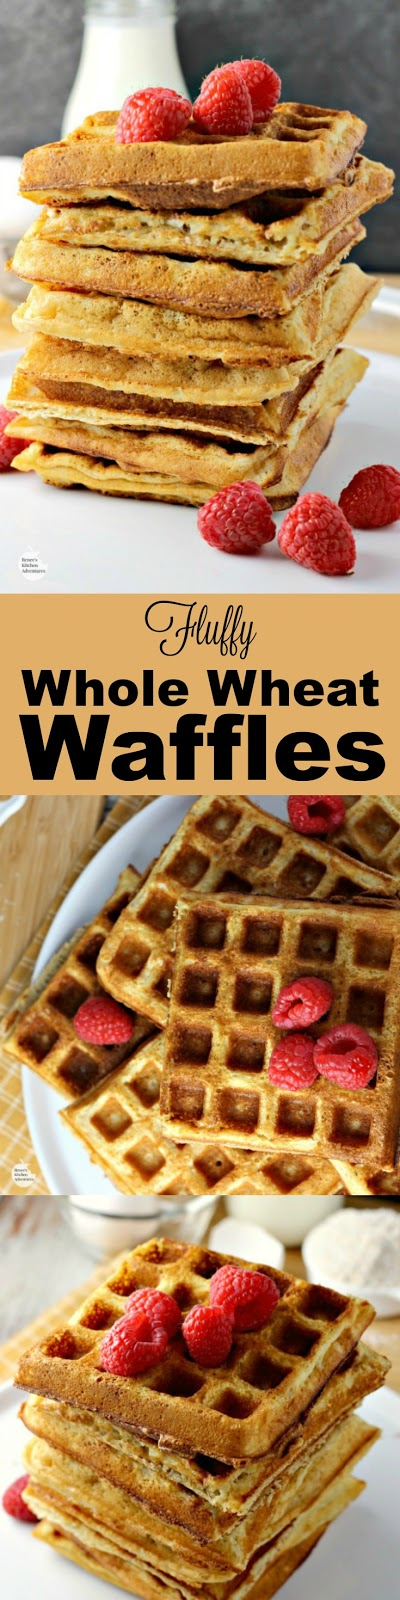 Fluffy Whole Wheat Waffles | by Renee's Kitchen Adventures - recipe for homemade whole grain buttermilk waffles that cook up light and fluffy! #RKArecipes